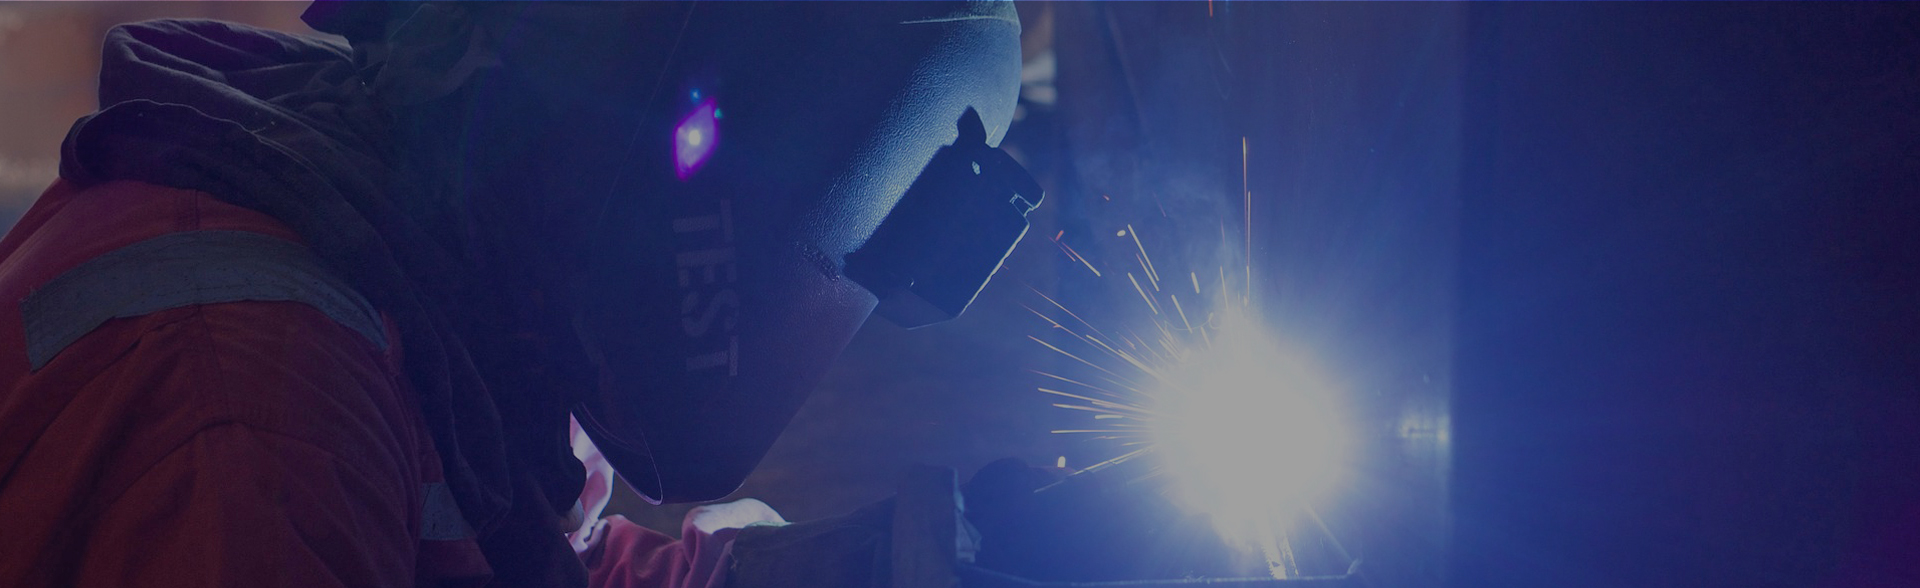 welding_banner_without-text